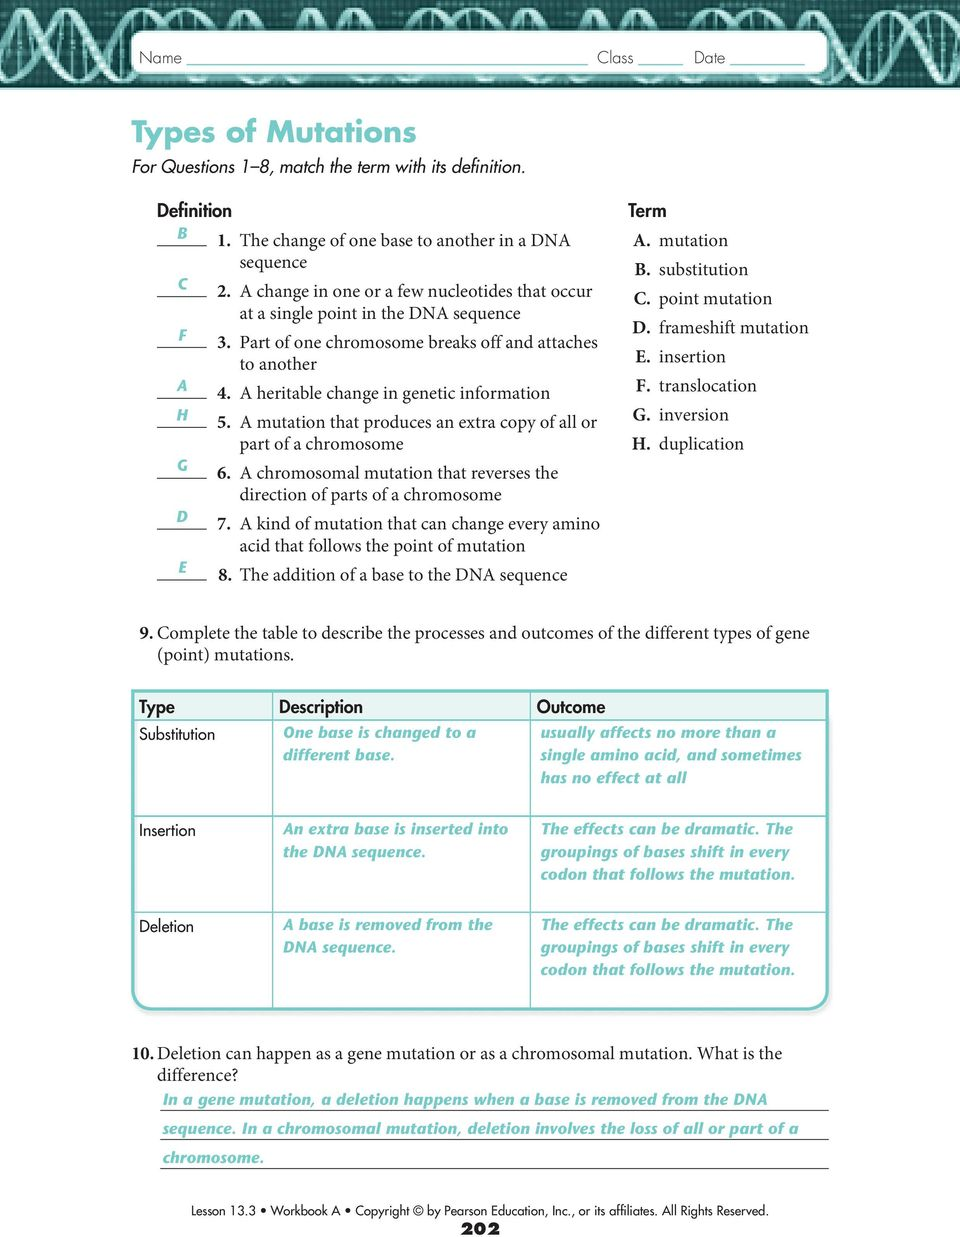 worksheet Chromosomal Mutations Worksheet rna and protein synthesis pdf mutation that produces an extra copy of all or part a chromosome 6 chromosomal